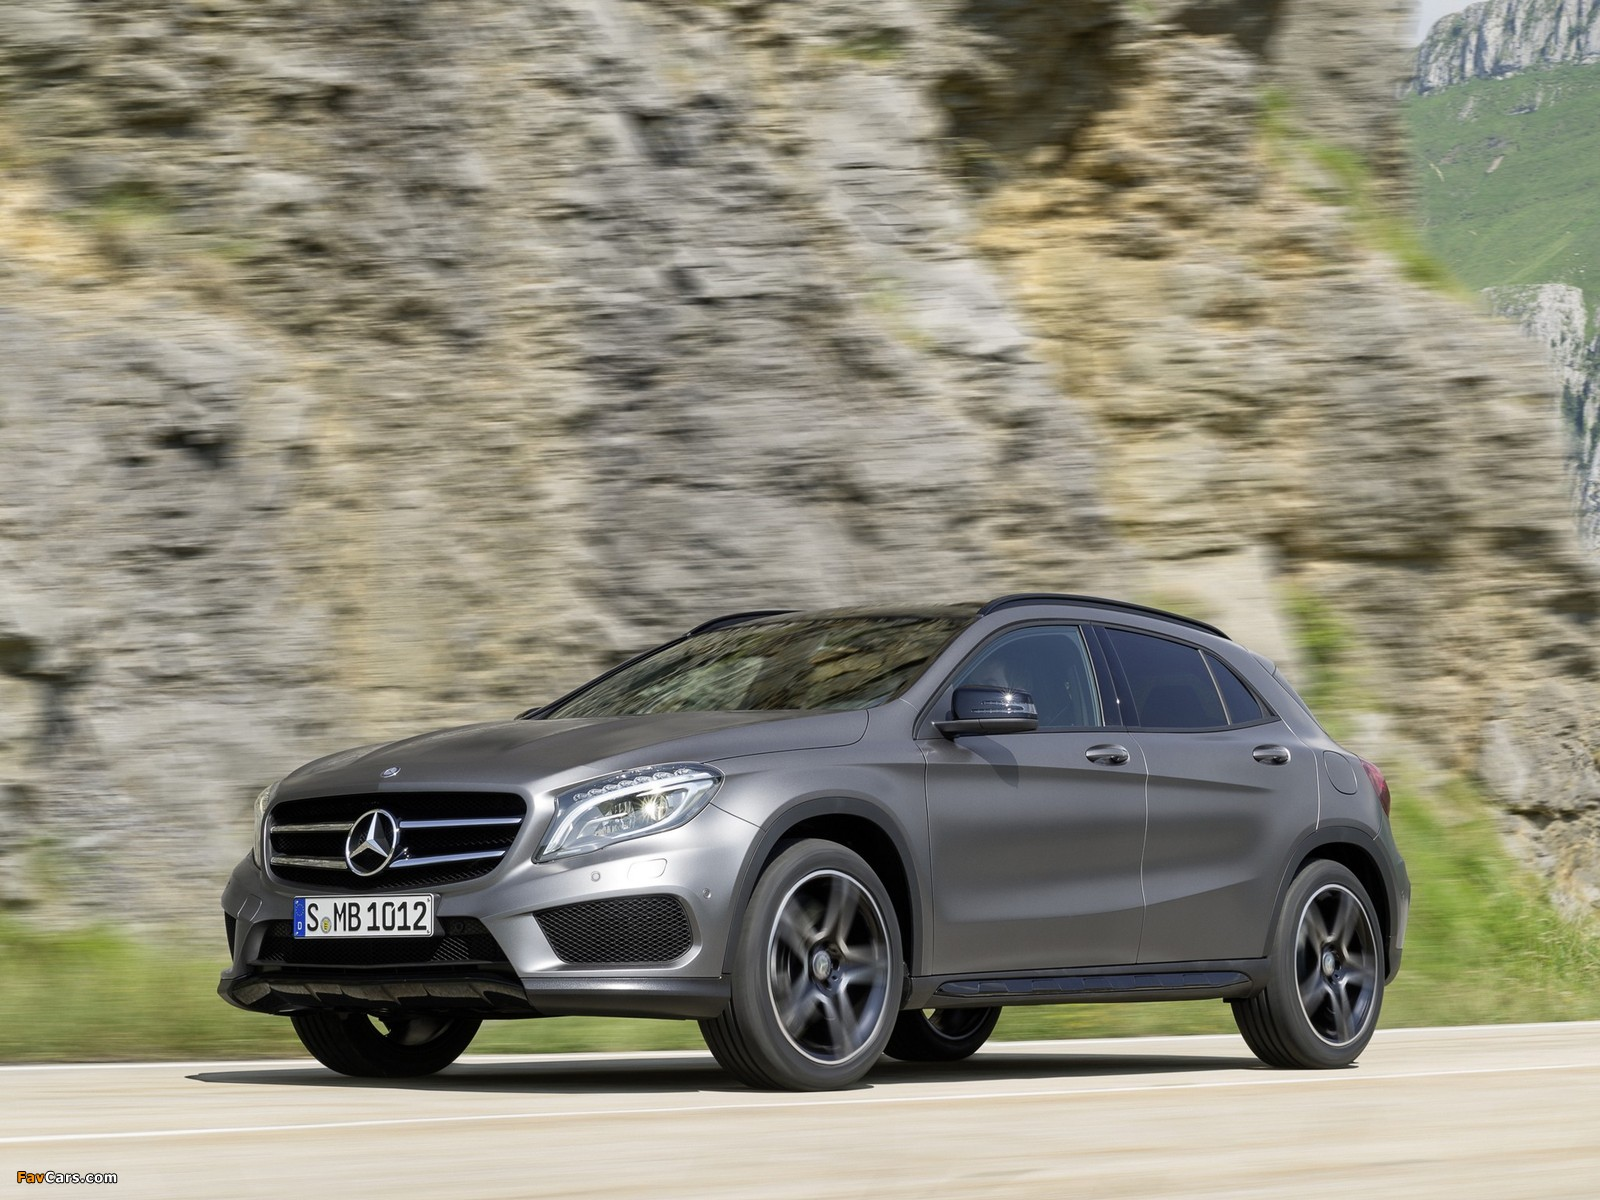 Wallpapers of mercedes benz gla 250 4matic amg sport for Mercedes benz gla 250